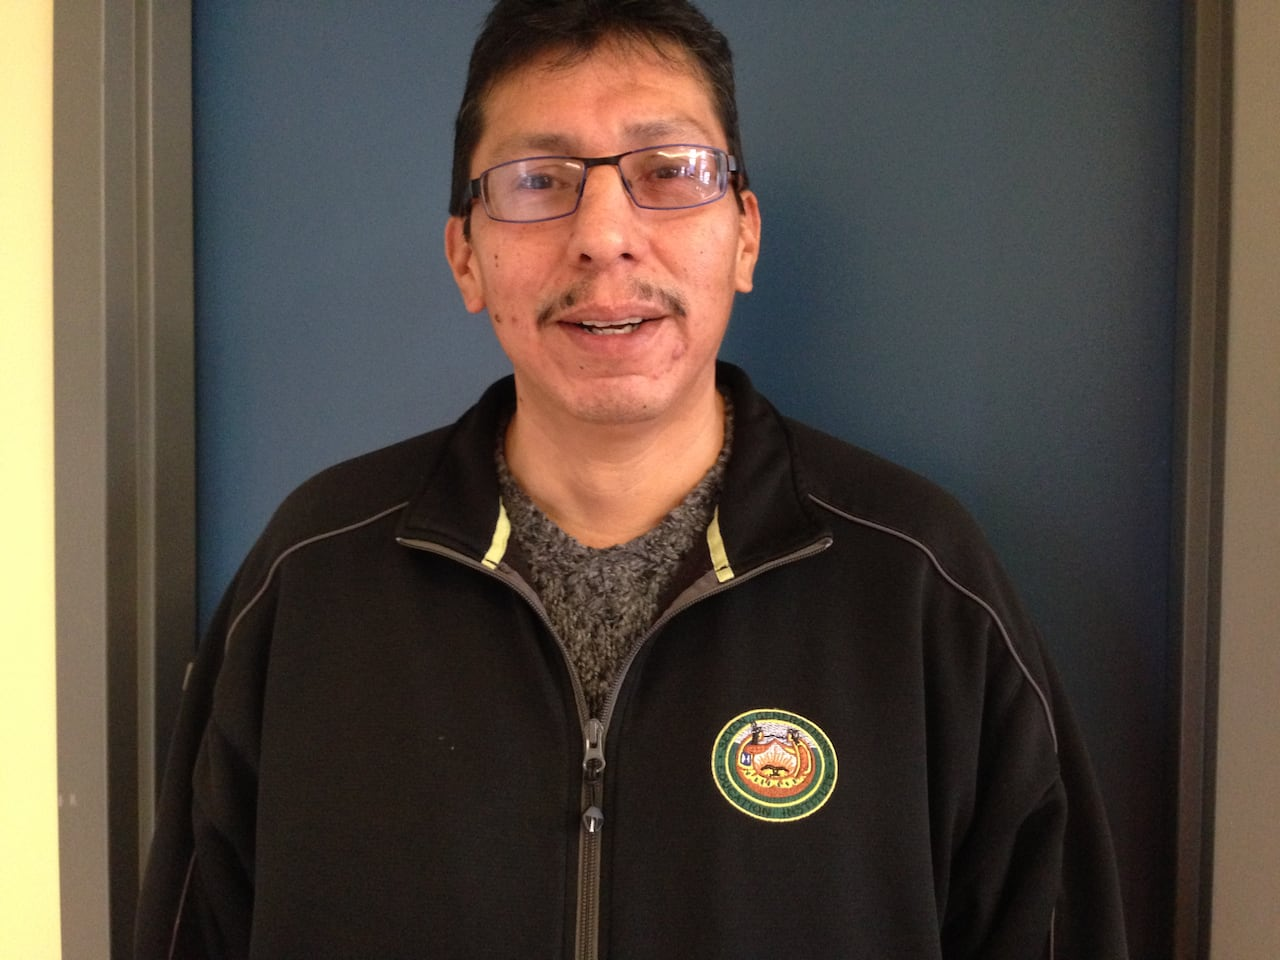 Cancer cured by medicine man, First Nations man says   CBC News